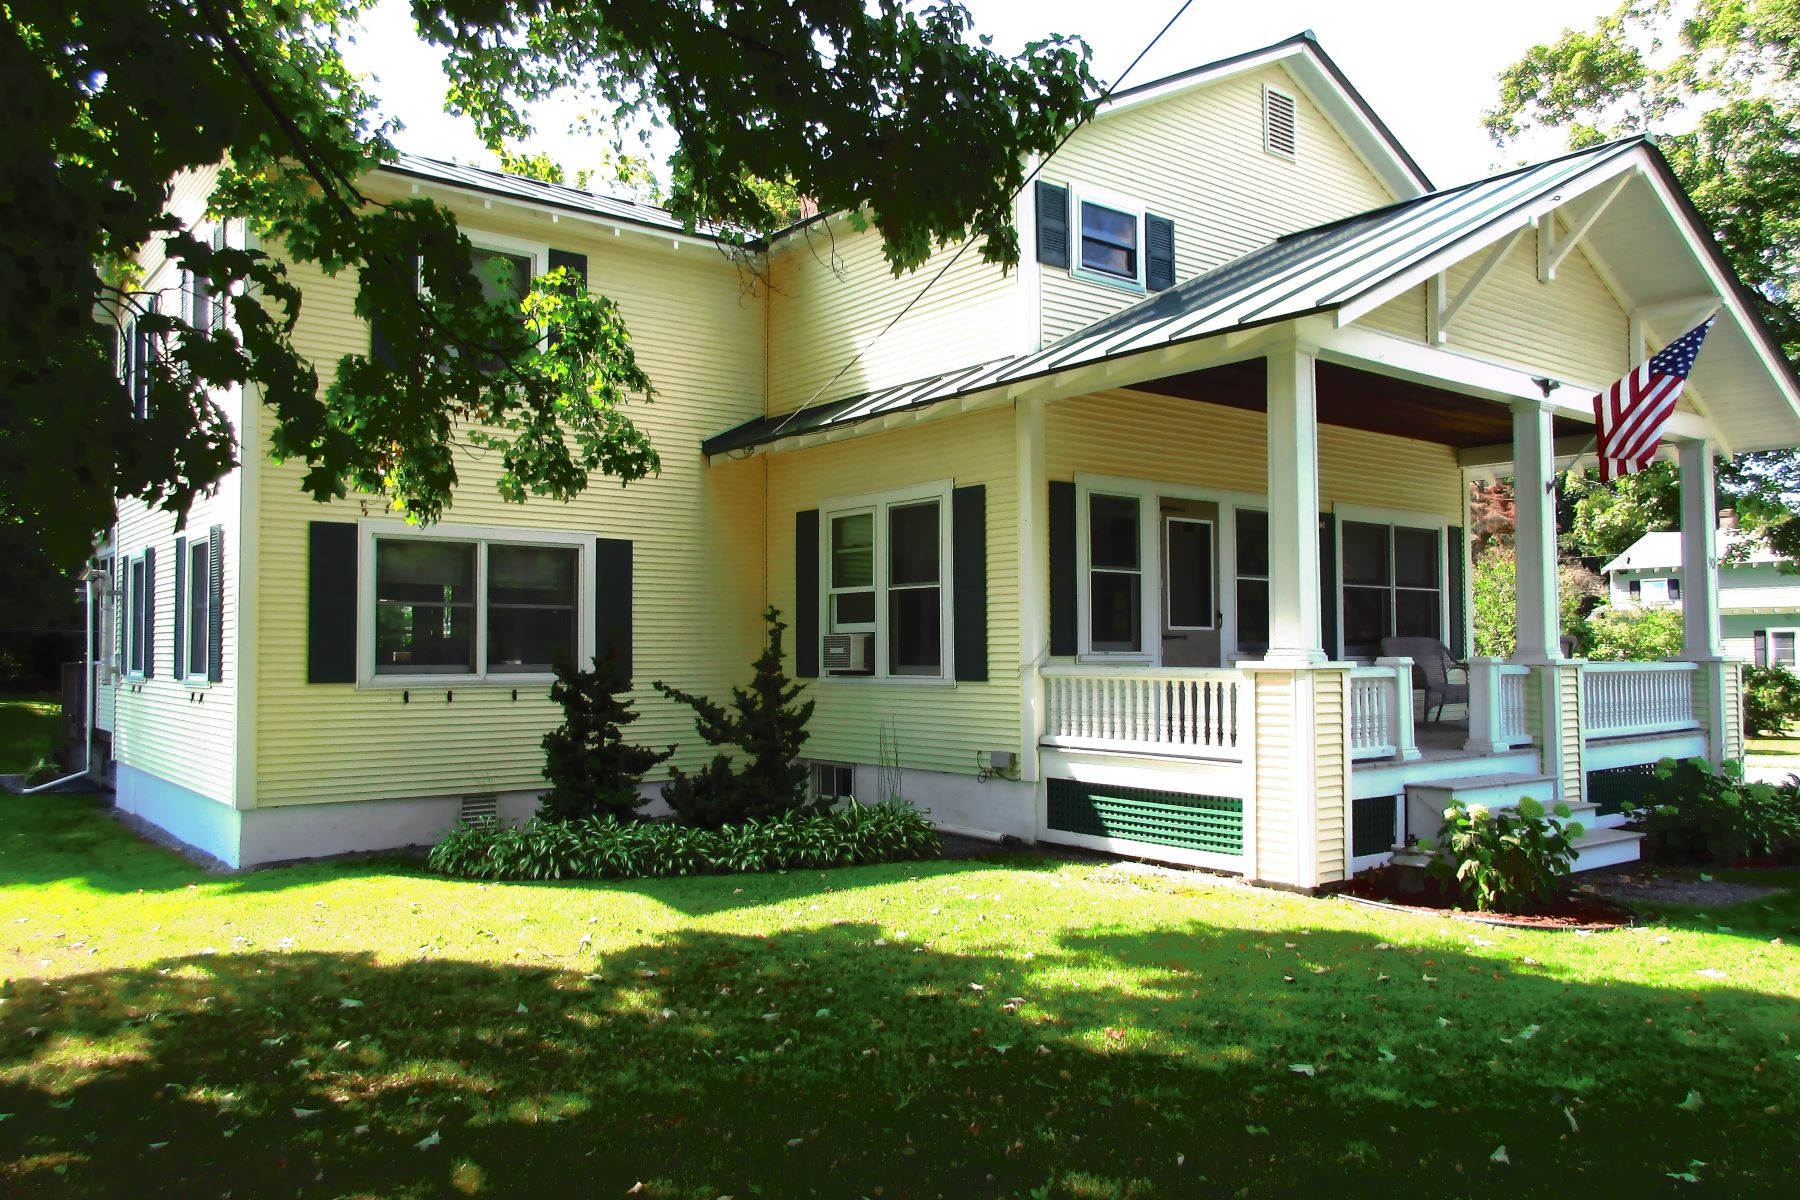 Single Family Homes for Sale at East Middlebury Village 90 Ossie Rd Middlebury, Vermont 05753 United States